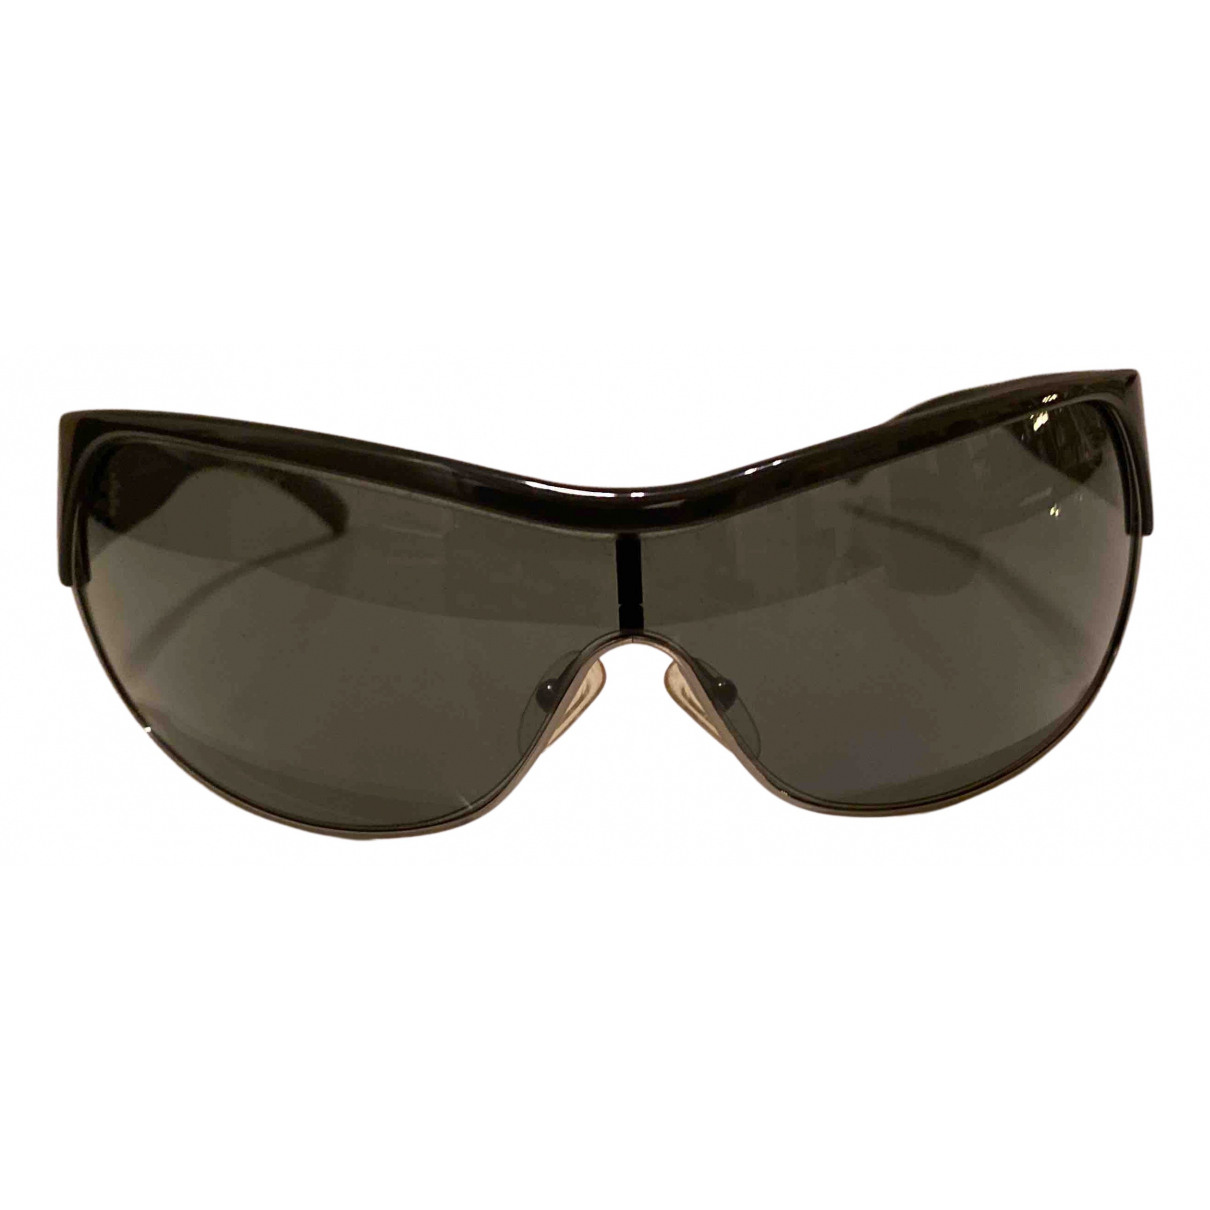 Emporio Armani N Grey Leather Sunglasses for Men N